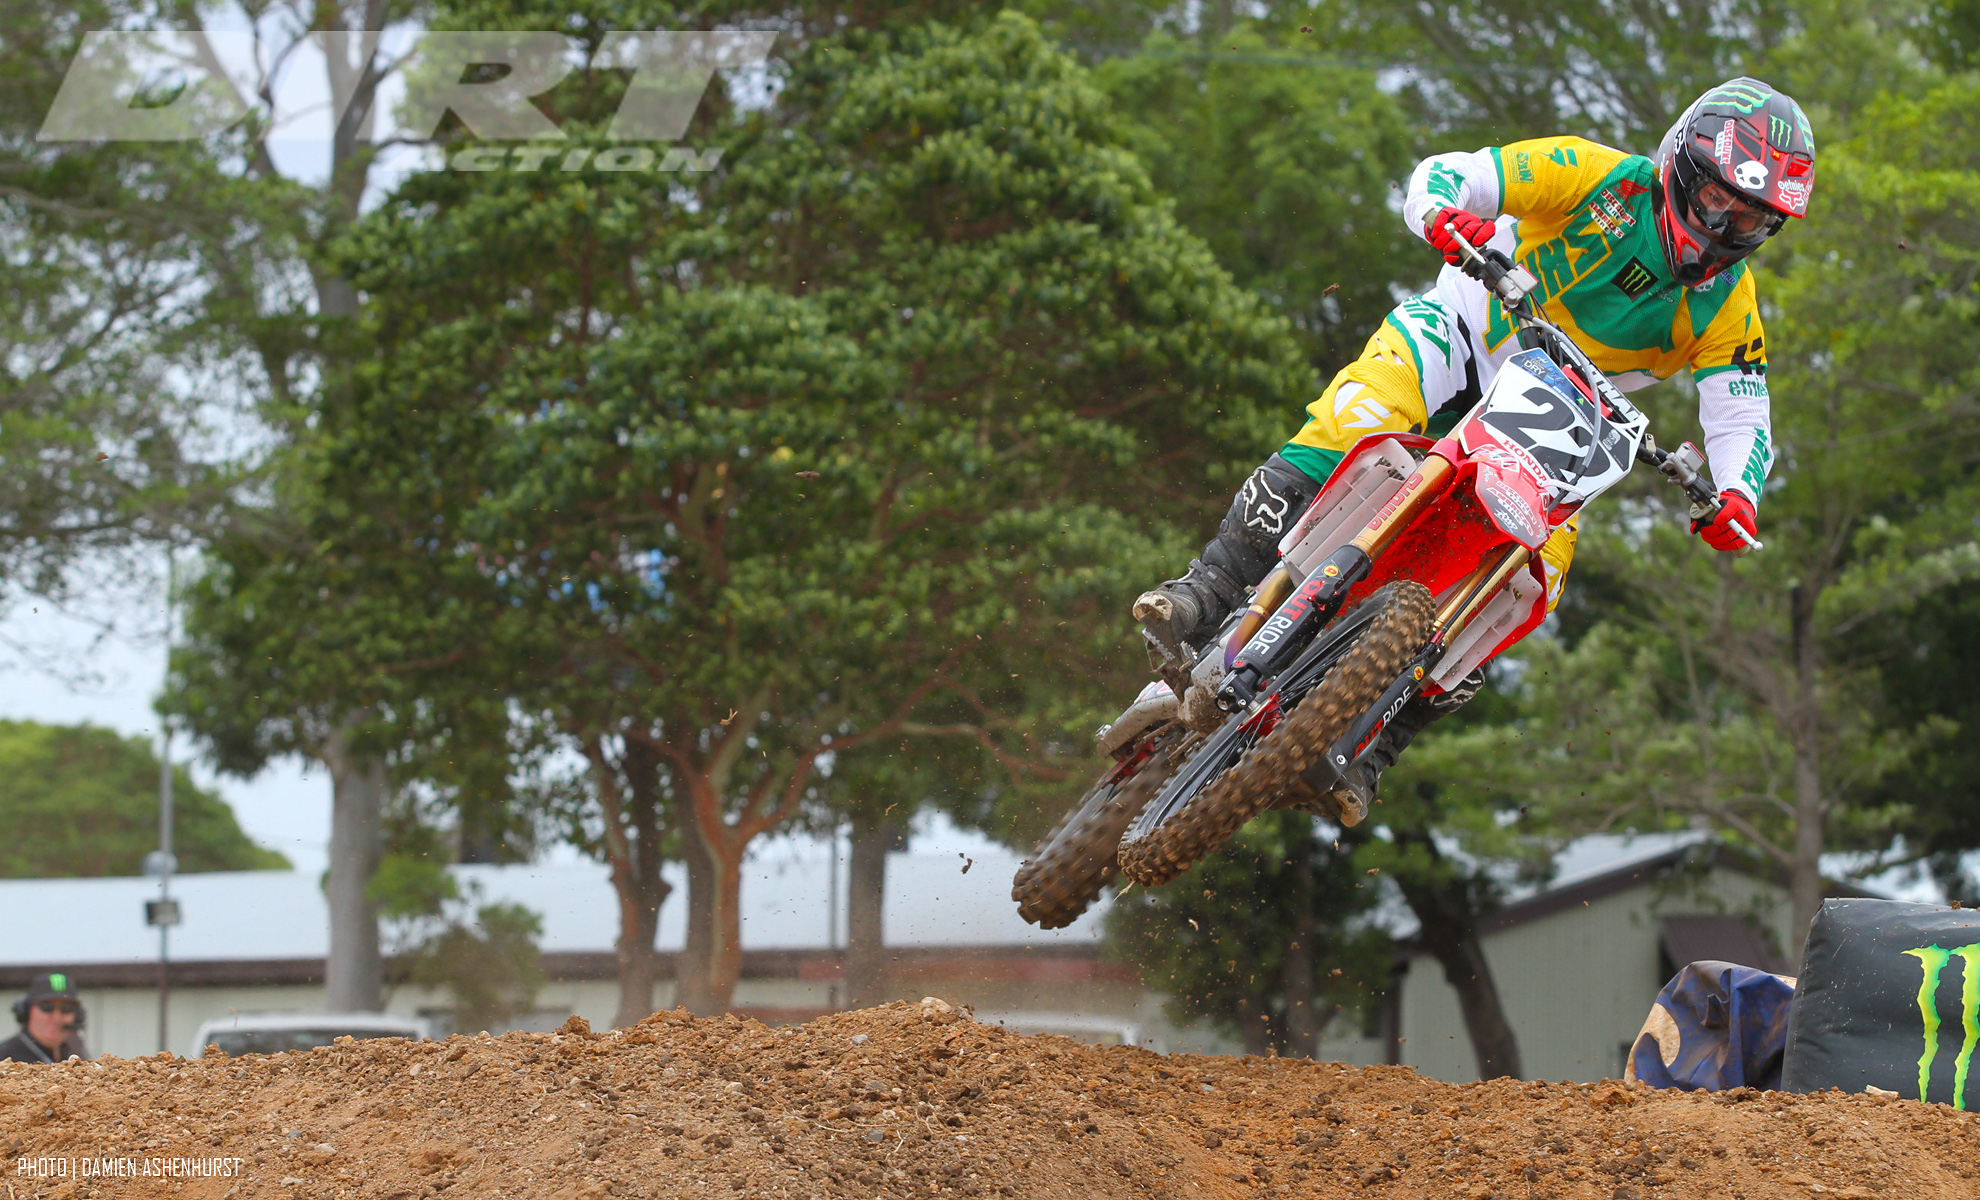 SUPERCROSS WALLPAPER GALLERY